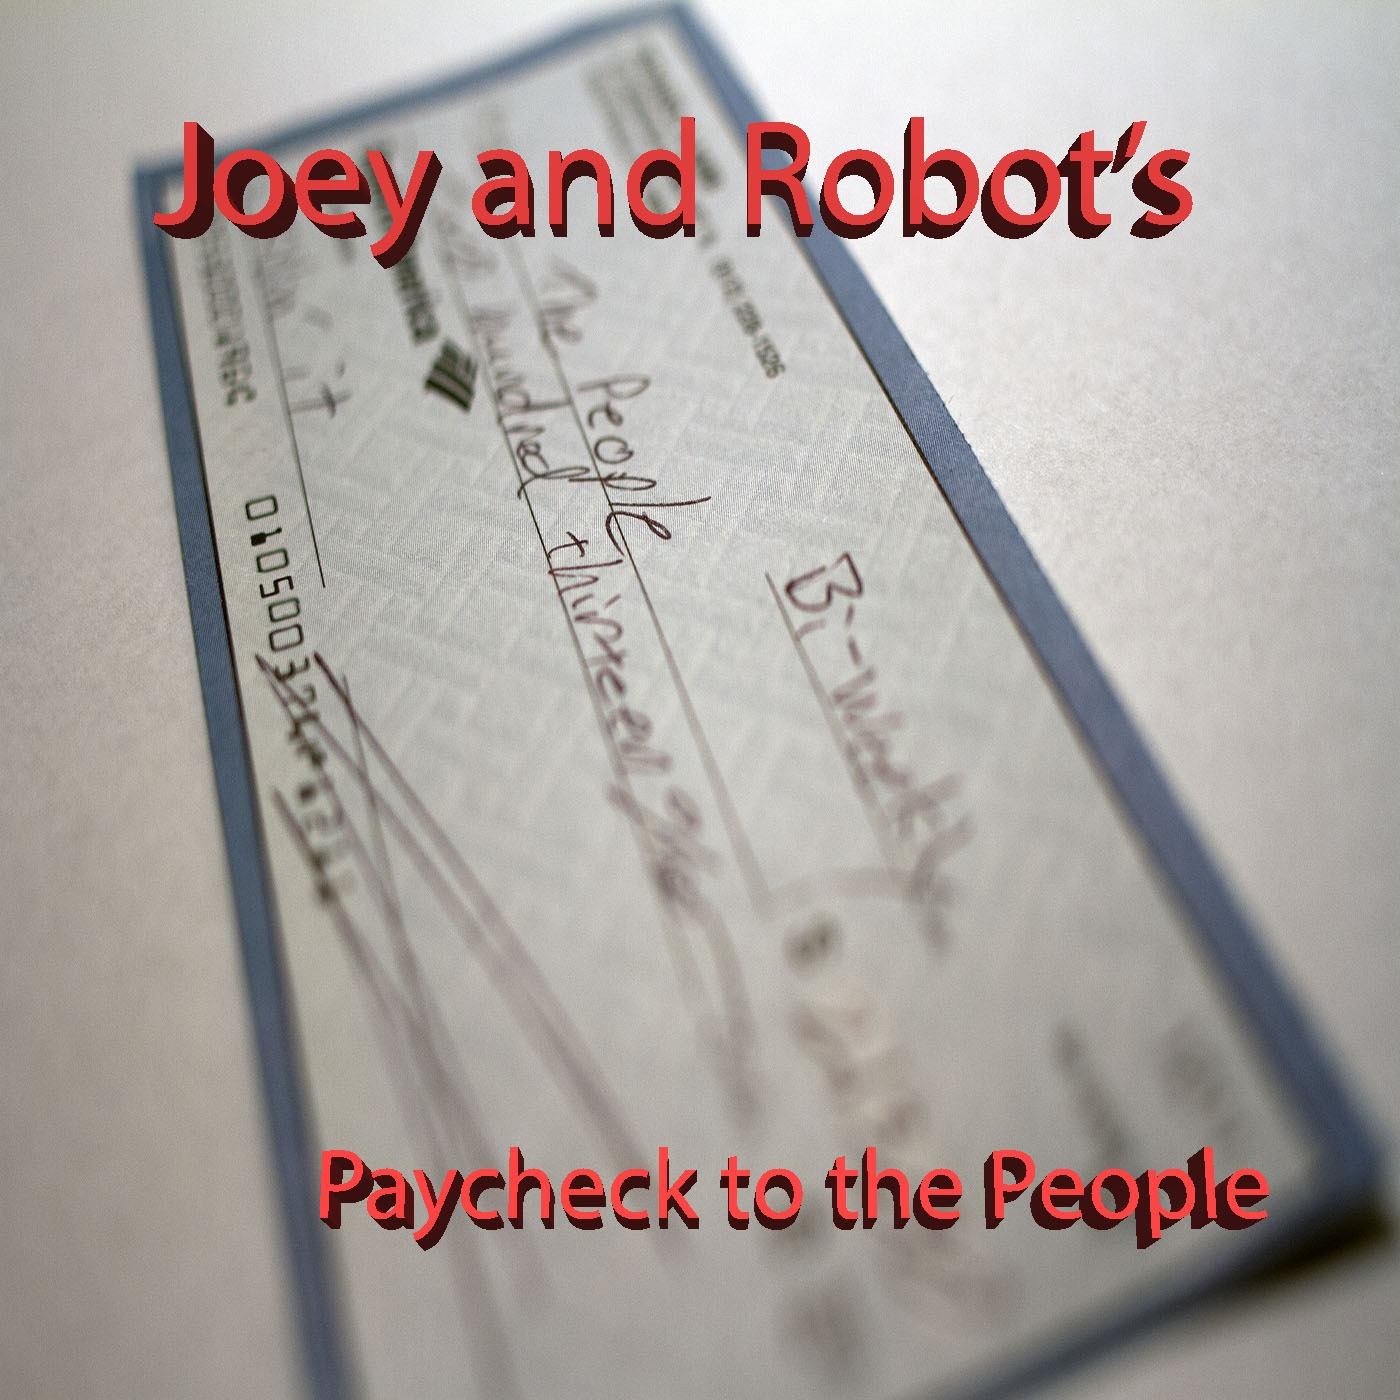 Joey and Robot's Paycheck to the people